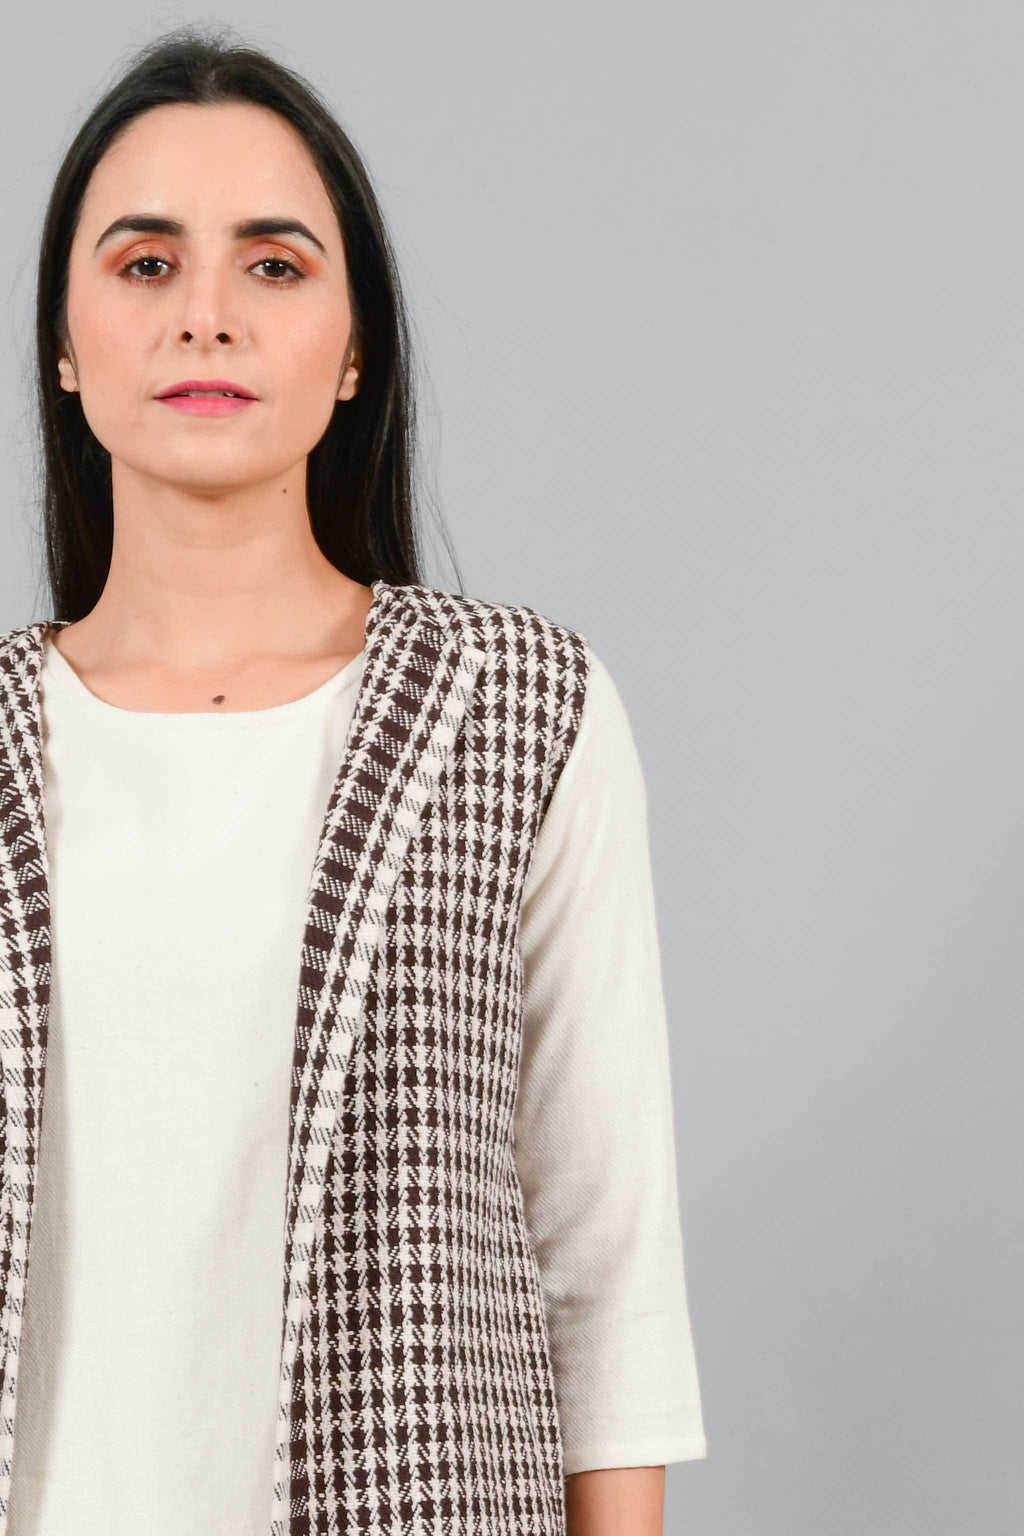 Front close up of an Indian Womenswear female model wearing Kora Brown handspun and handwoven khadi long Jacket over an off-white cashmere cotton dress by Cotton Rack.